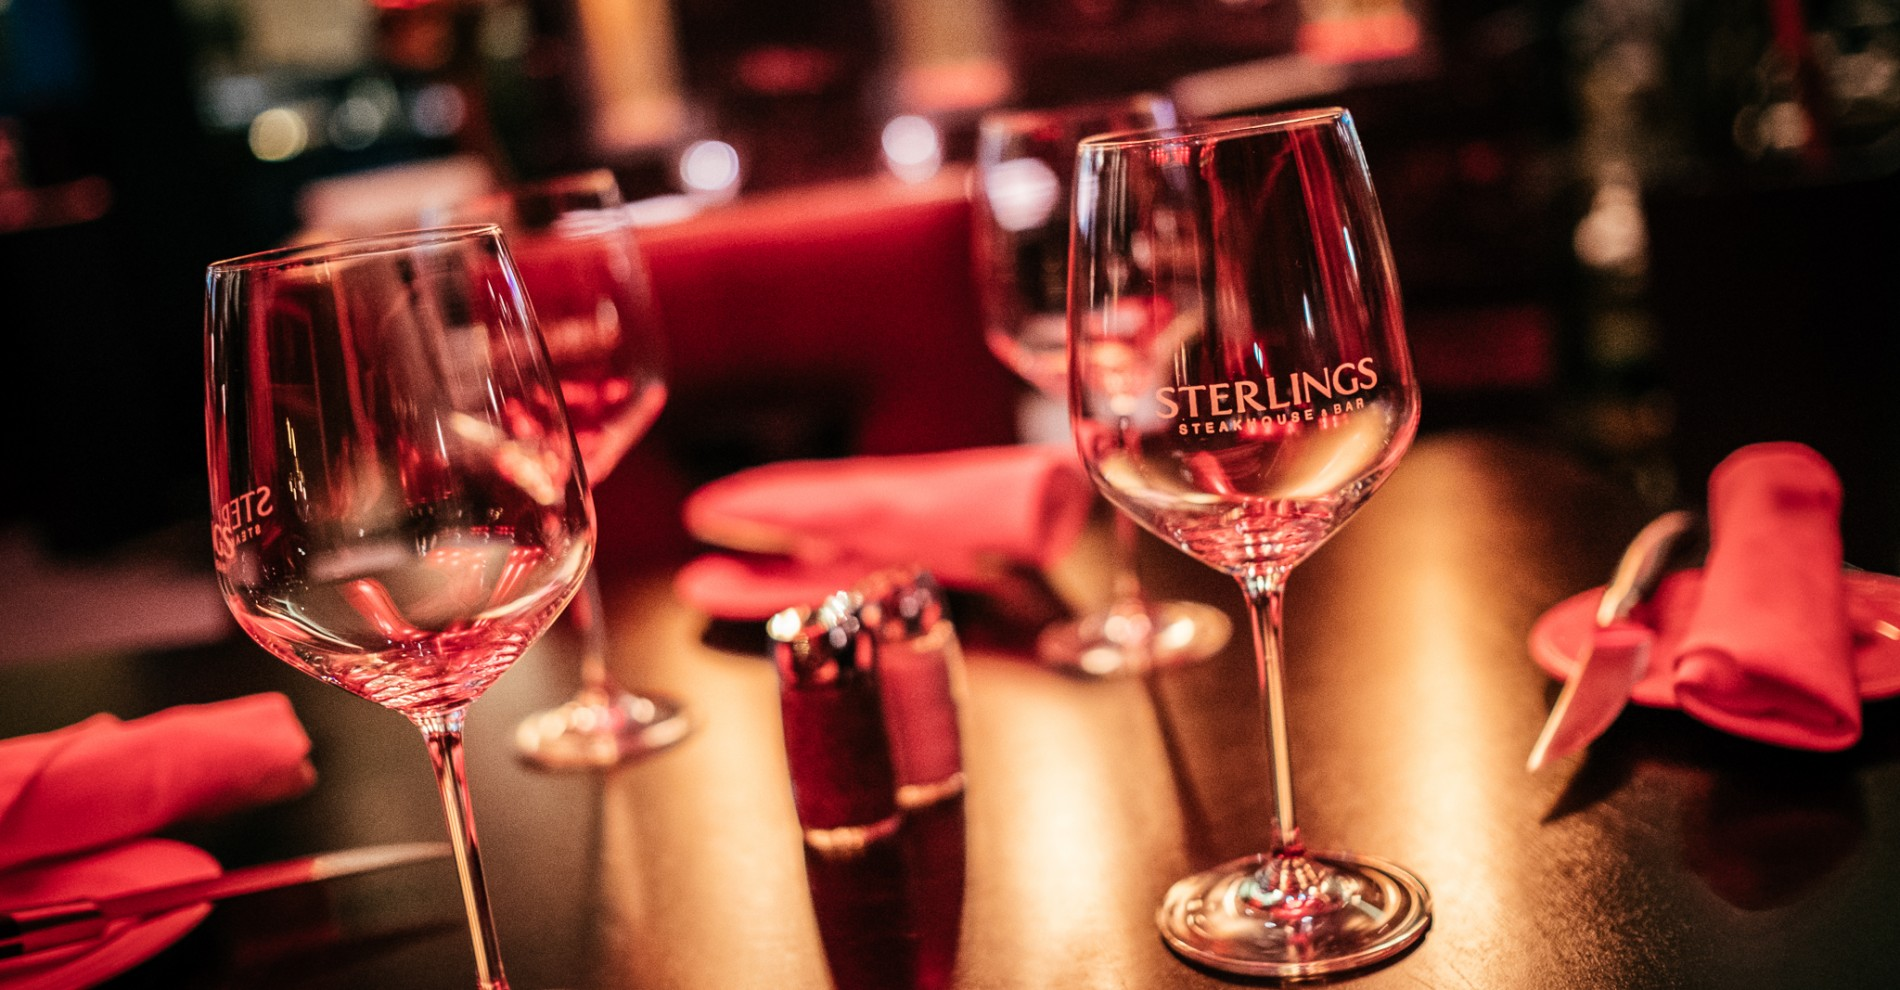 Evenement Sterlings Steakhouse 2018 123 Fr